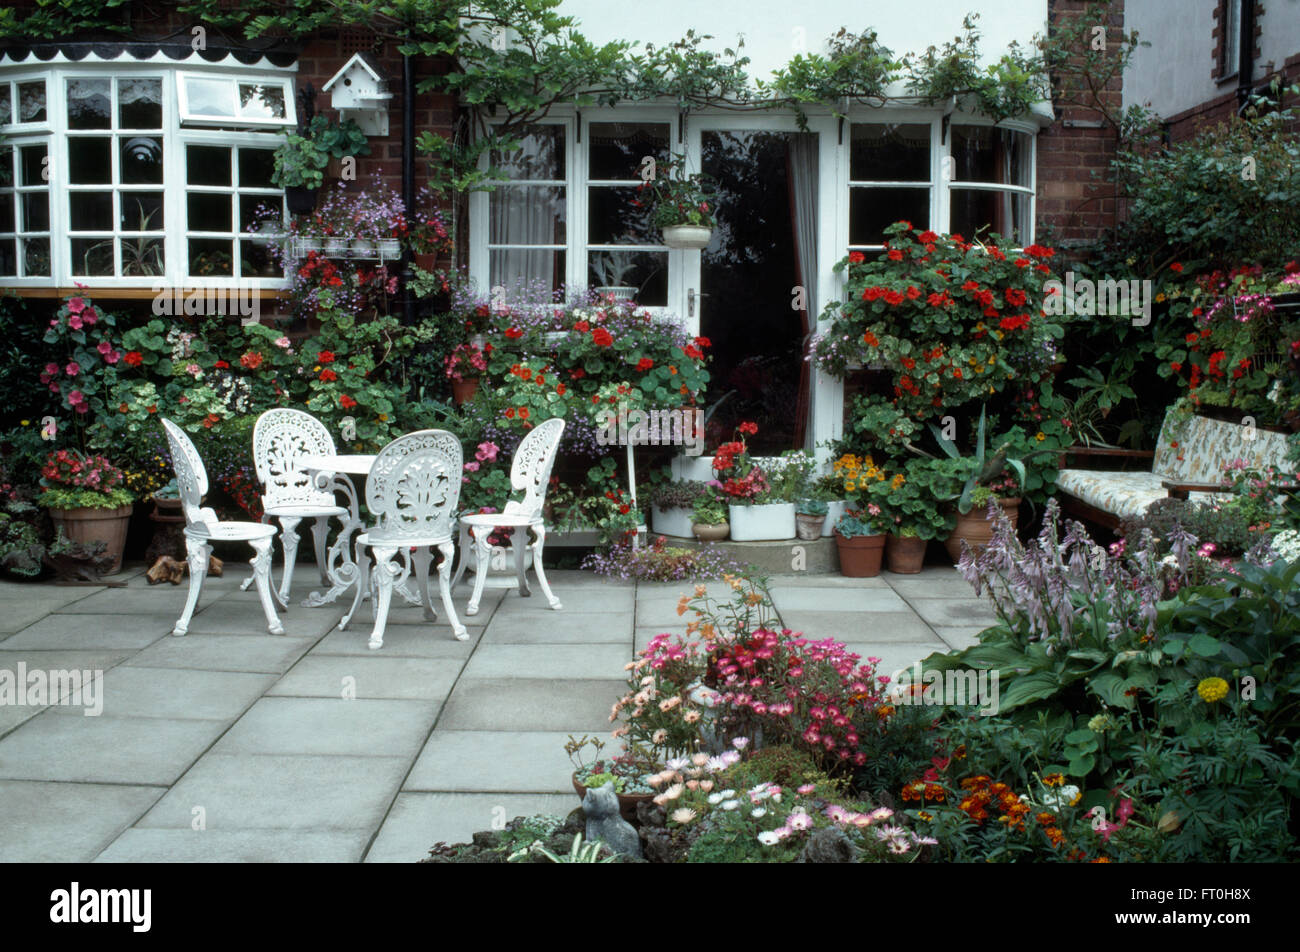 White Wrought Iron Table And Chairs Part - 33: Stock Photo - White Wrought Iron Table And Chairs On Paved Patio In Front  Of French Windows Of Suburban House